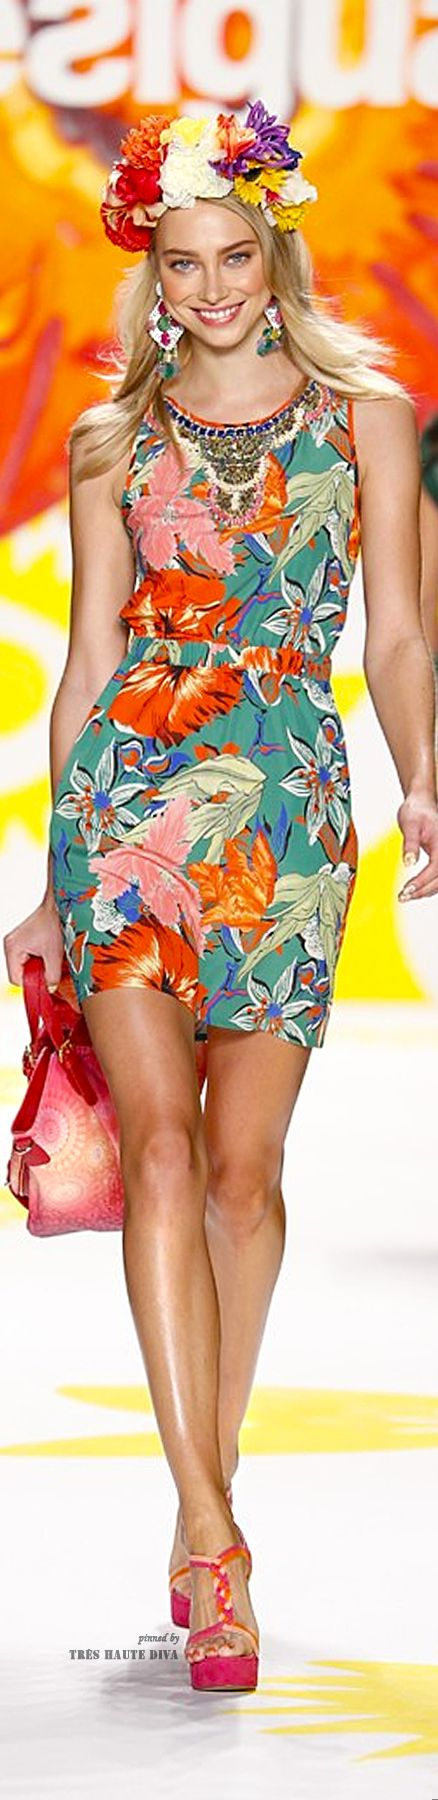 Desigual Spring 2015 RTW (Collection 'Say Something Nice for Spring designed by Christian Lacroix) ♔ Très Haute Diva